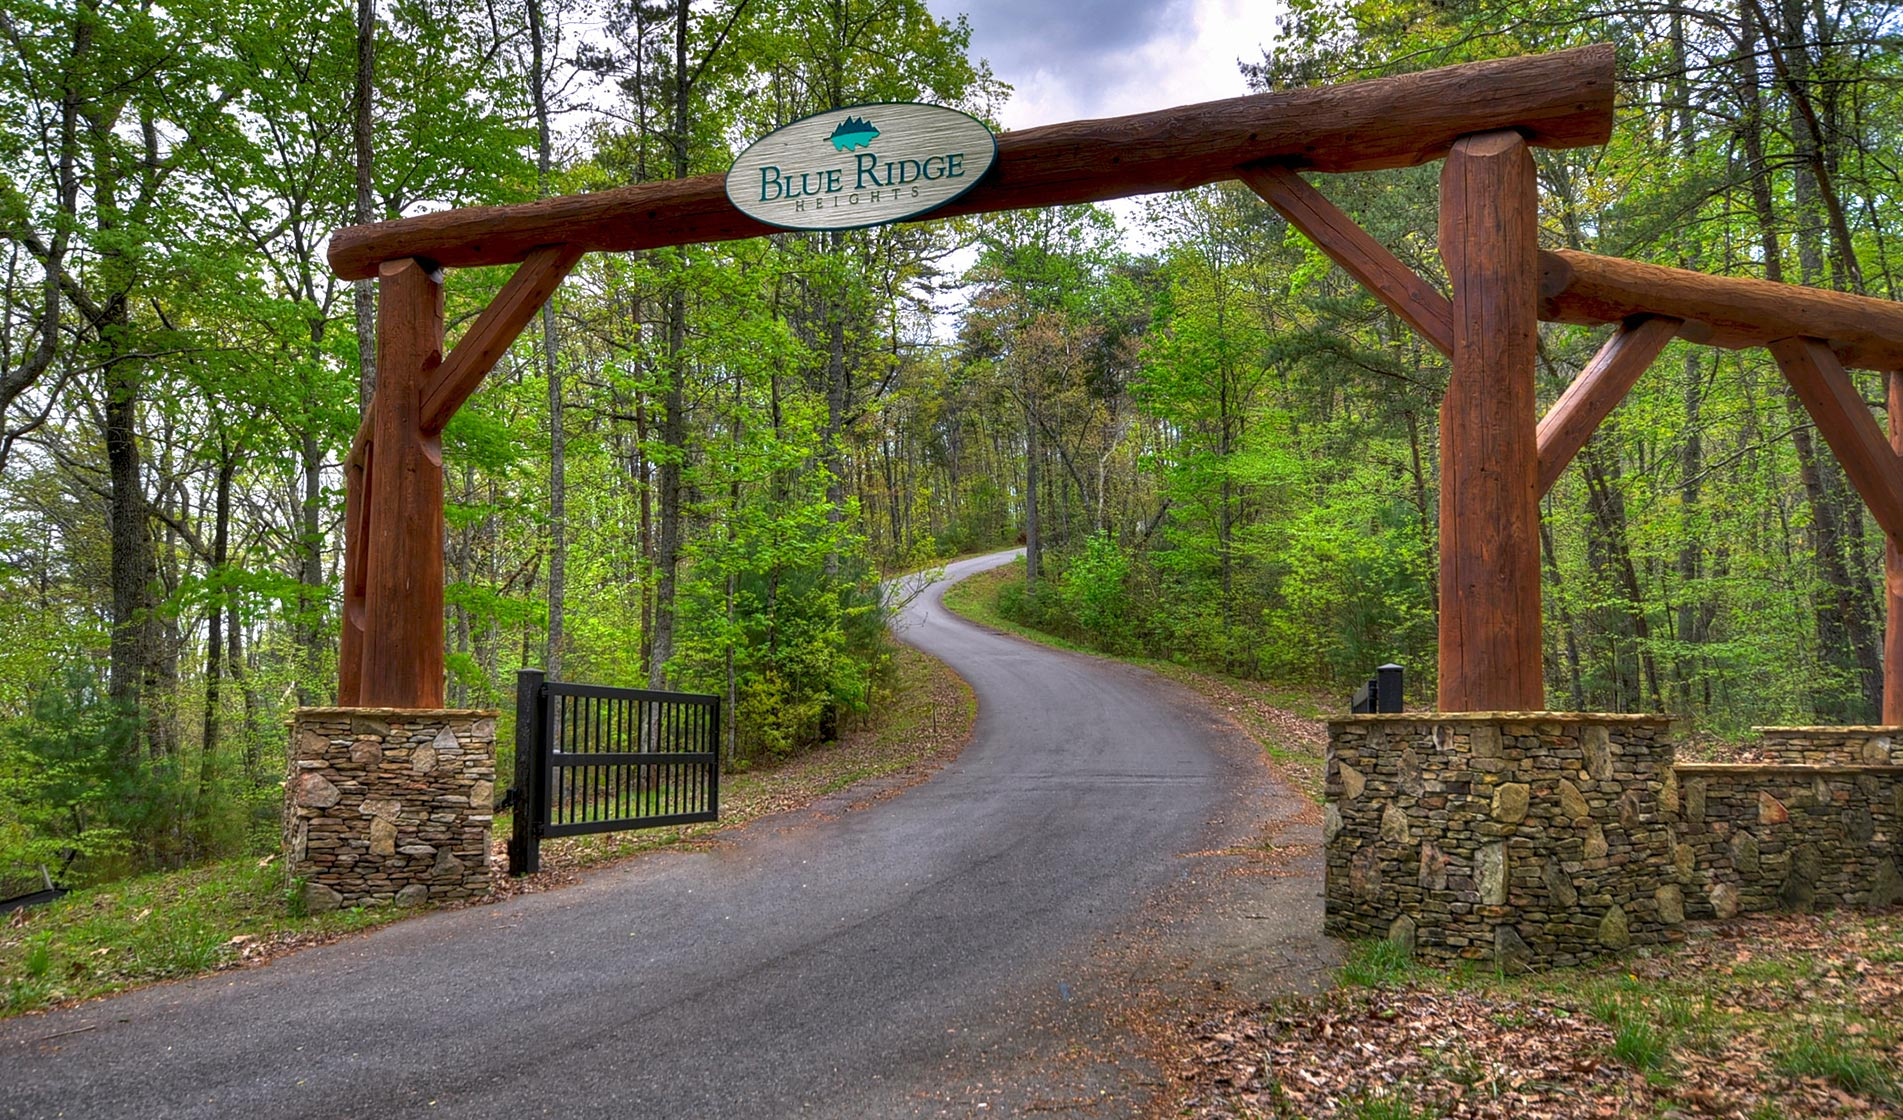 Blue Ridge Heights Main Gate